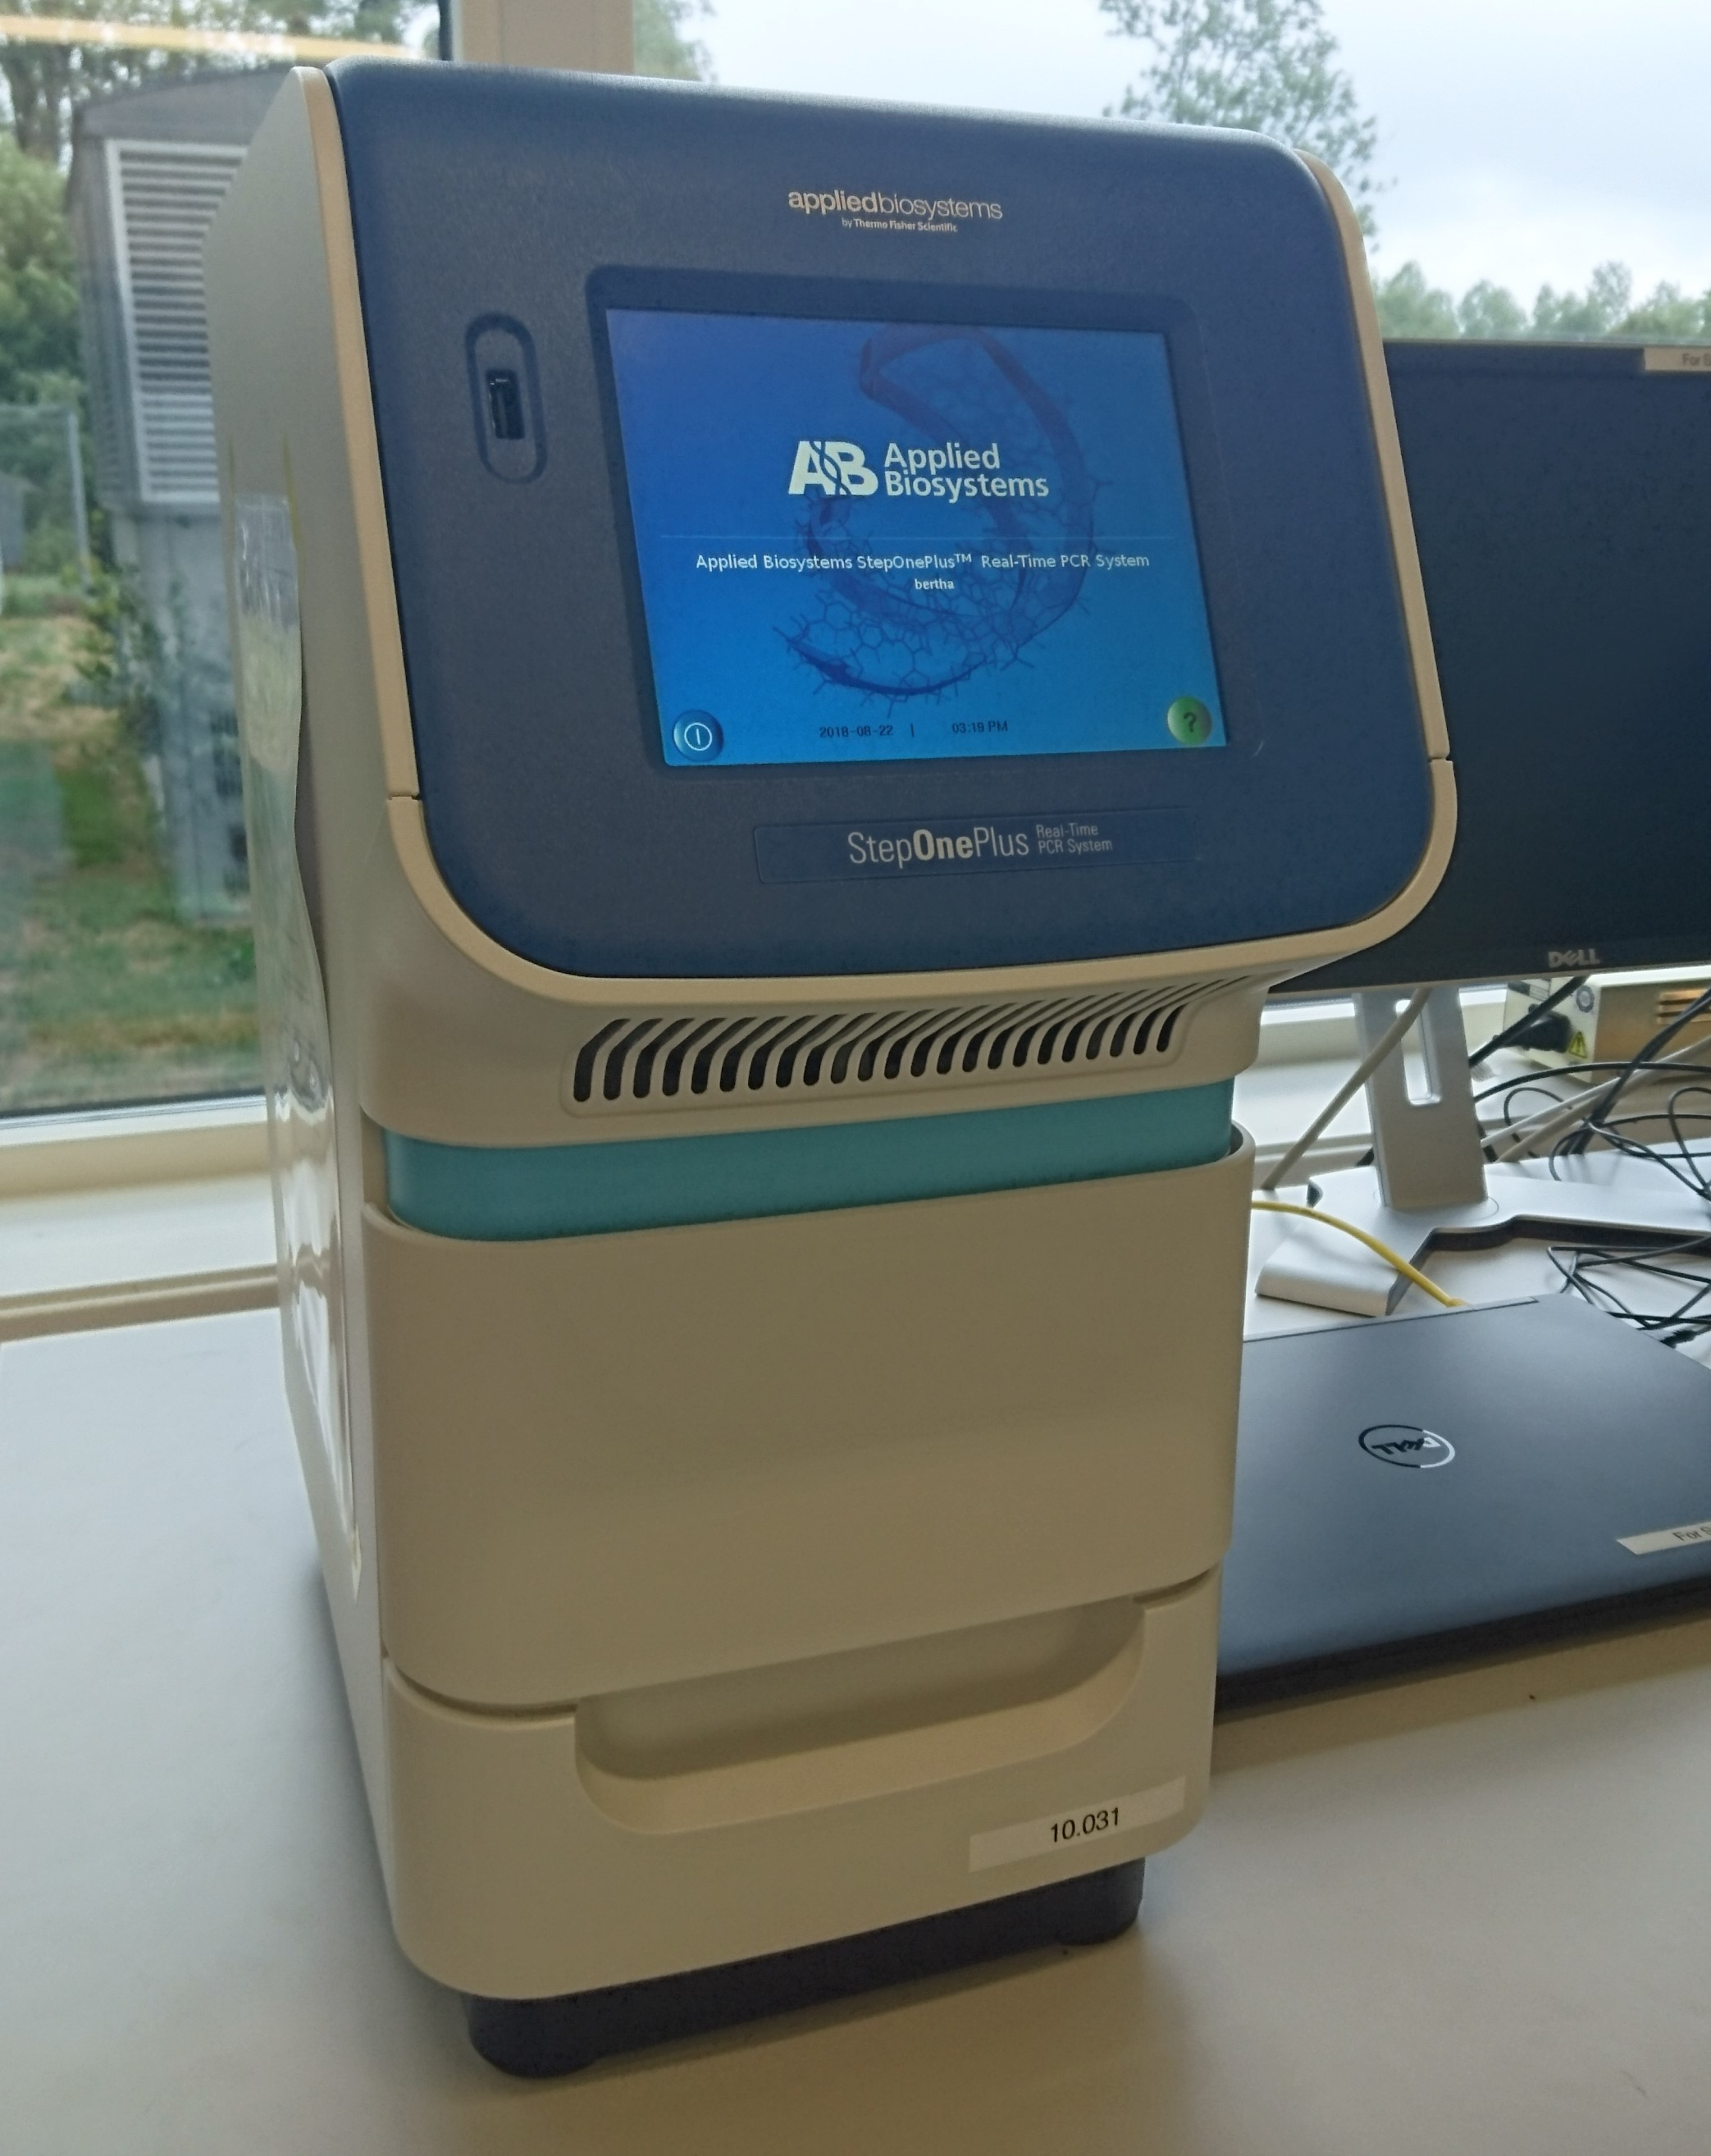 Picture of StepOnePlus real-time PCR